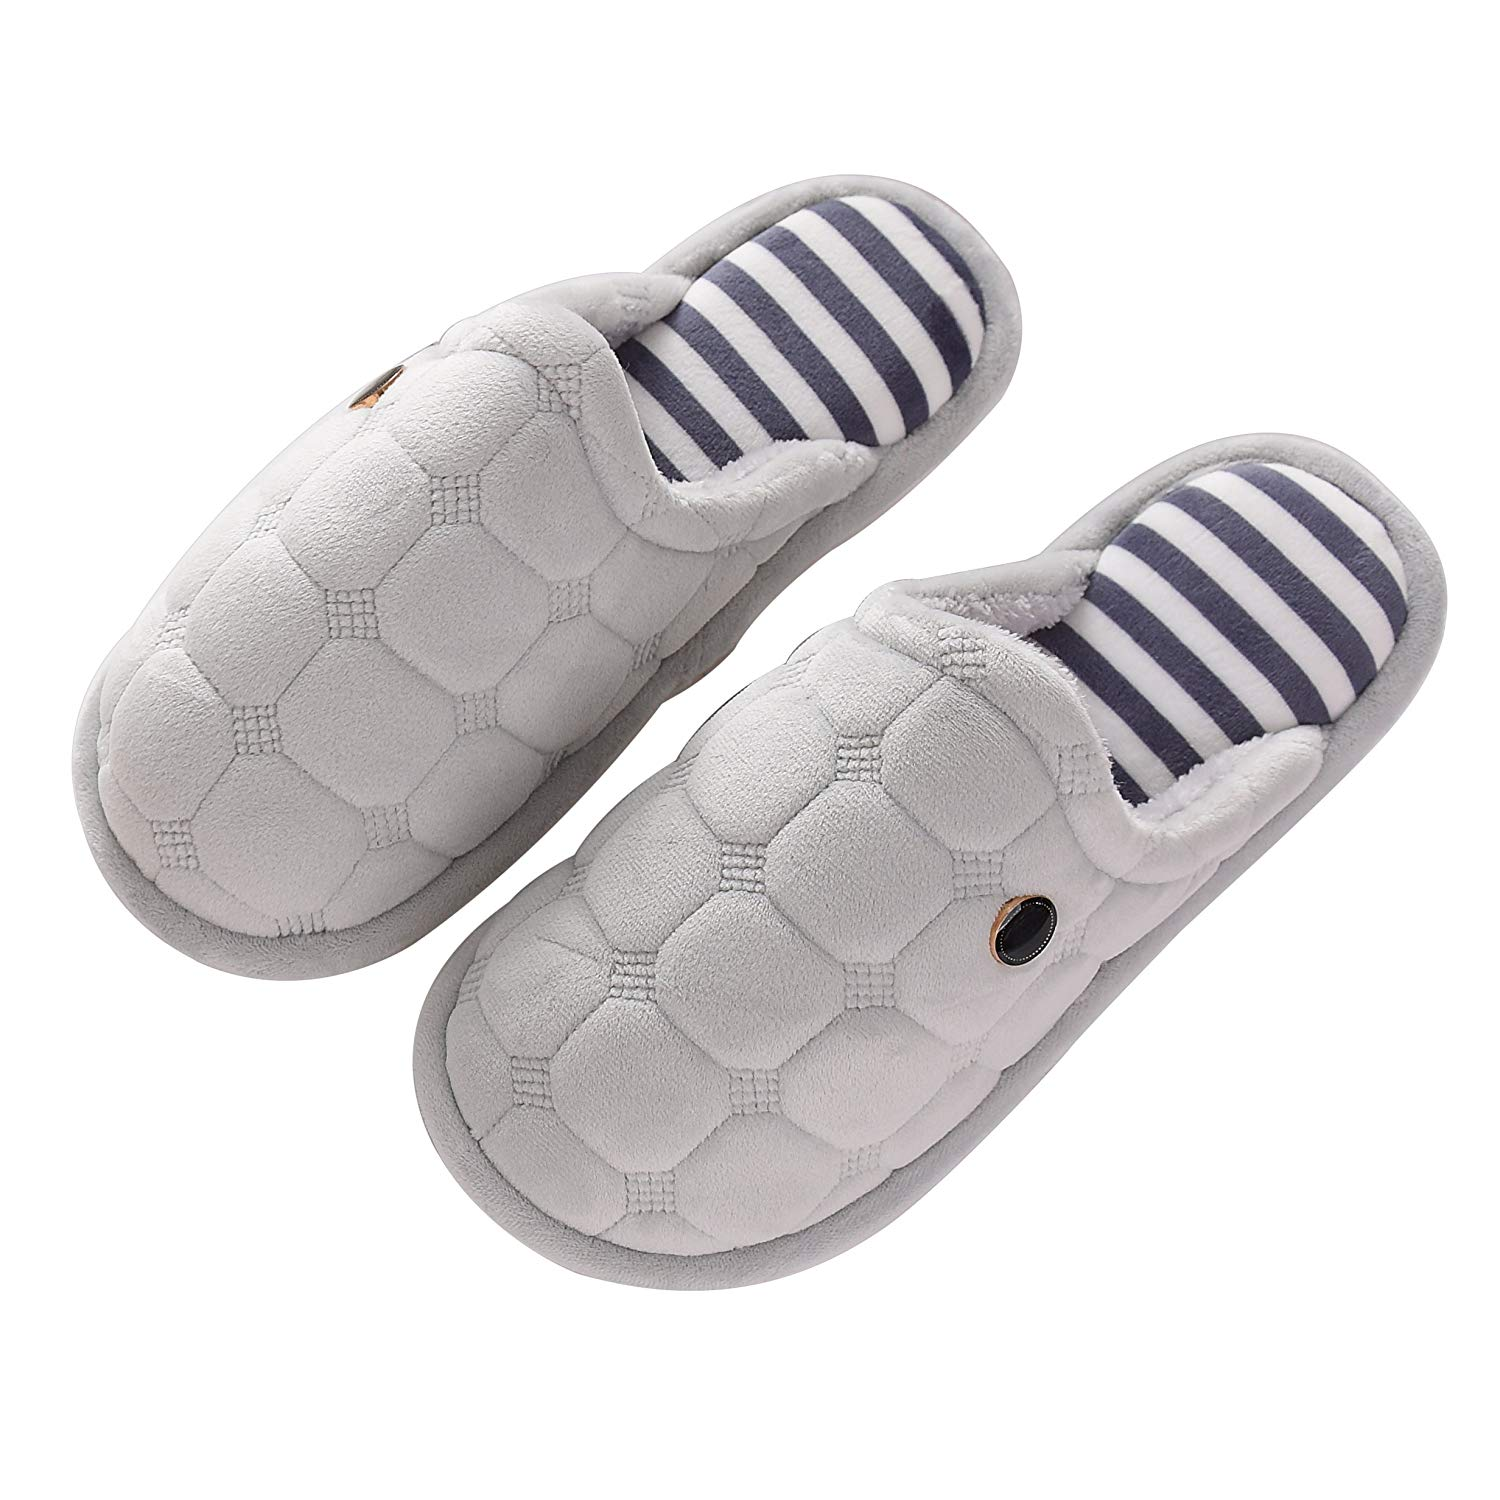 OxygenBeauty Indoor Slippers, Cotton Slippers, Winter Warm Slipper, House Slippers, Comfortable Anti-Slip Floor House Slippers For Women and Men, Winter Couples House Floor Slippers